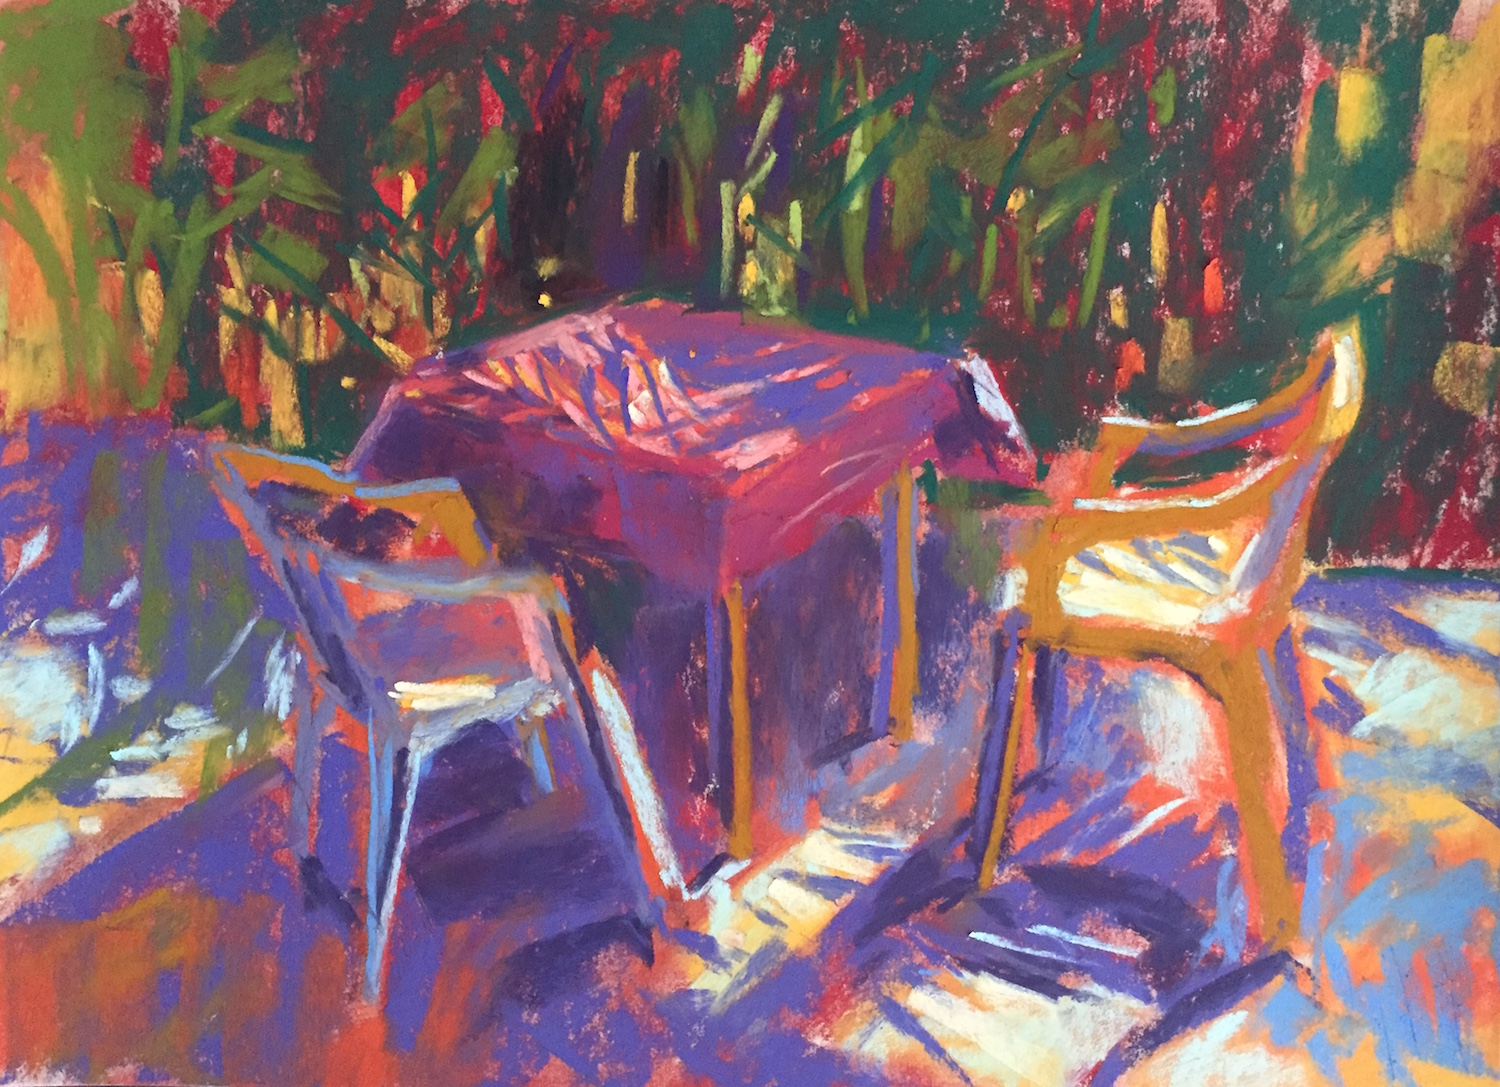 Chaos of Light And Shadow: 8. I now concentrate on creating areas of light - on the chairs, the table, the patio, and the area behind the plants.